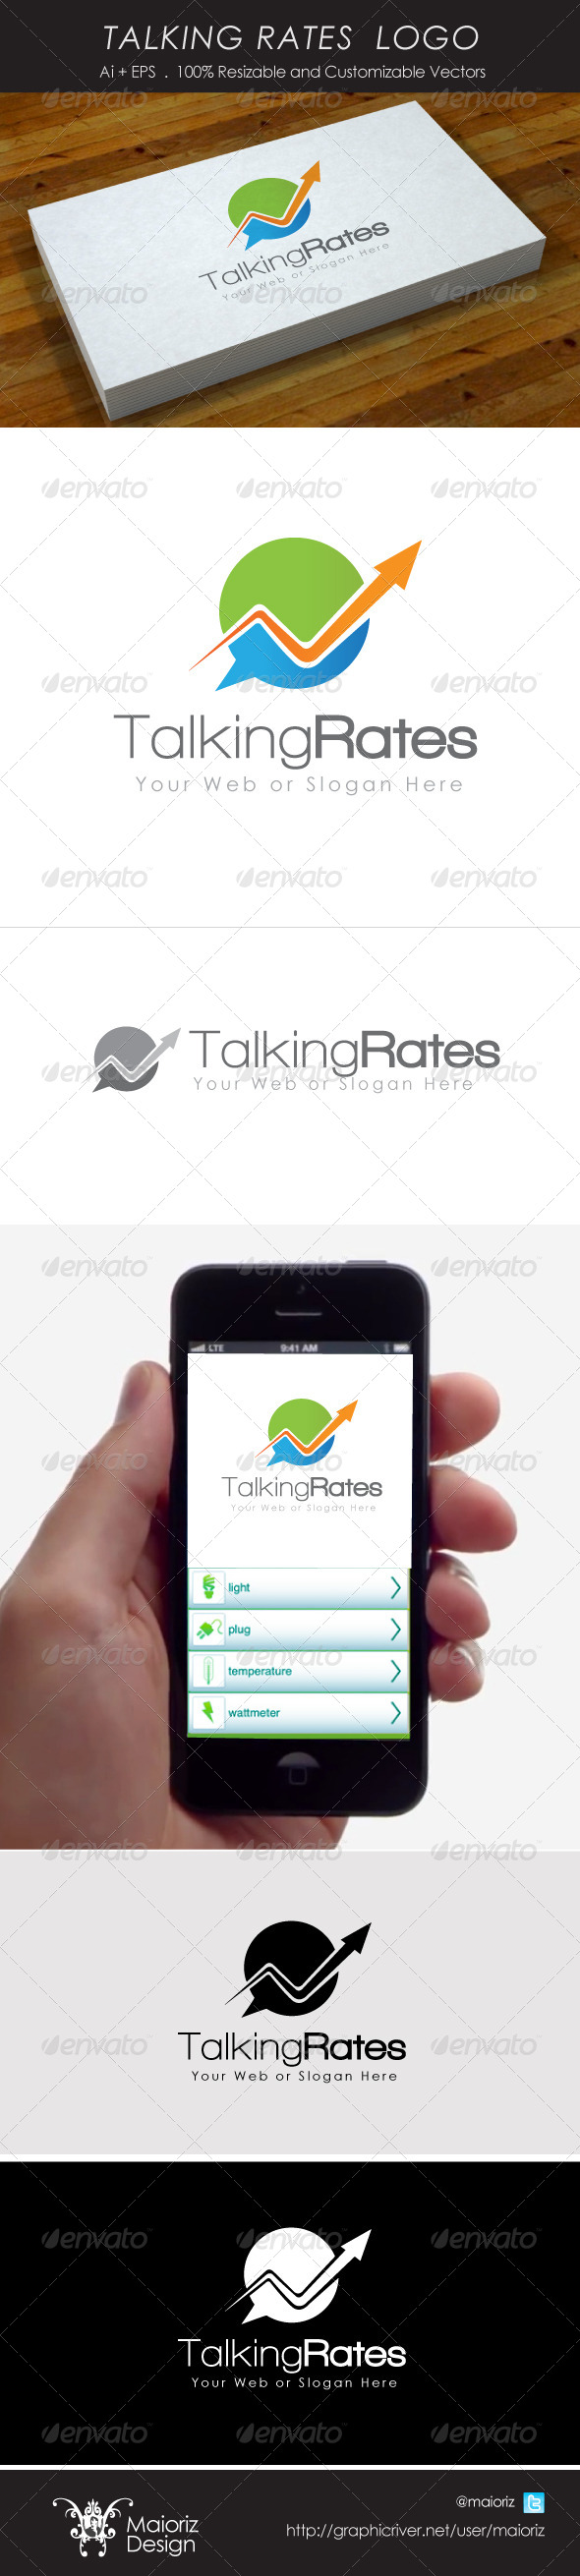 Talking Rates Logo - Vector Abstract